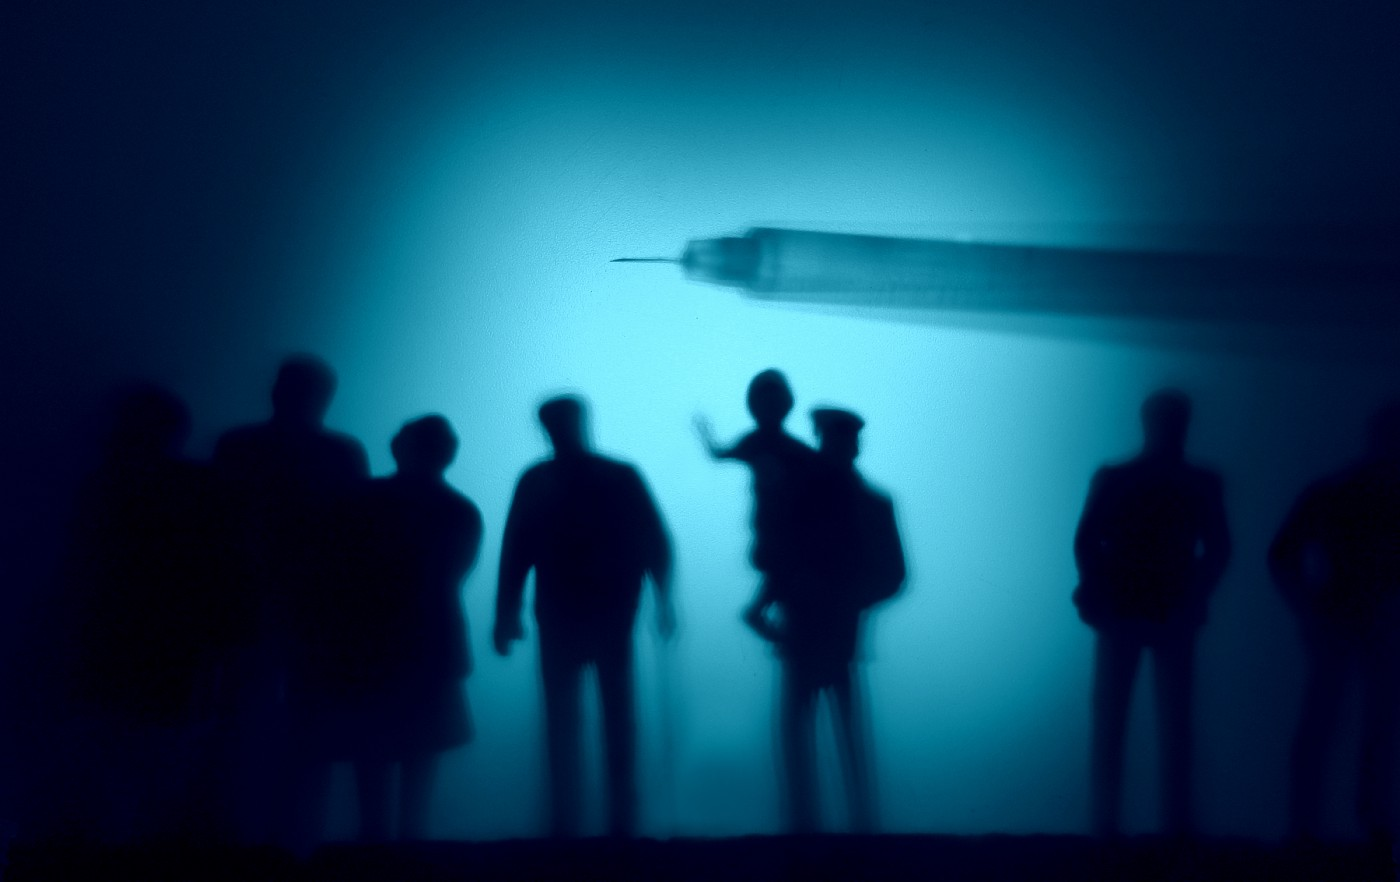 The silhouette of a vaccine shot hovering over dark silhouettes of people from various age groups.